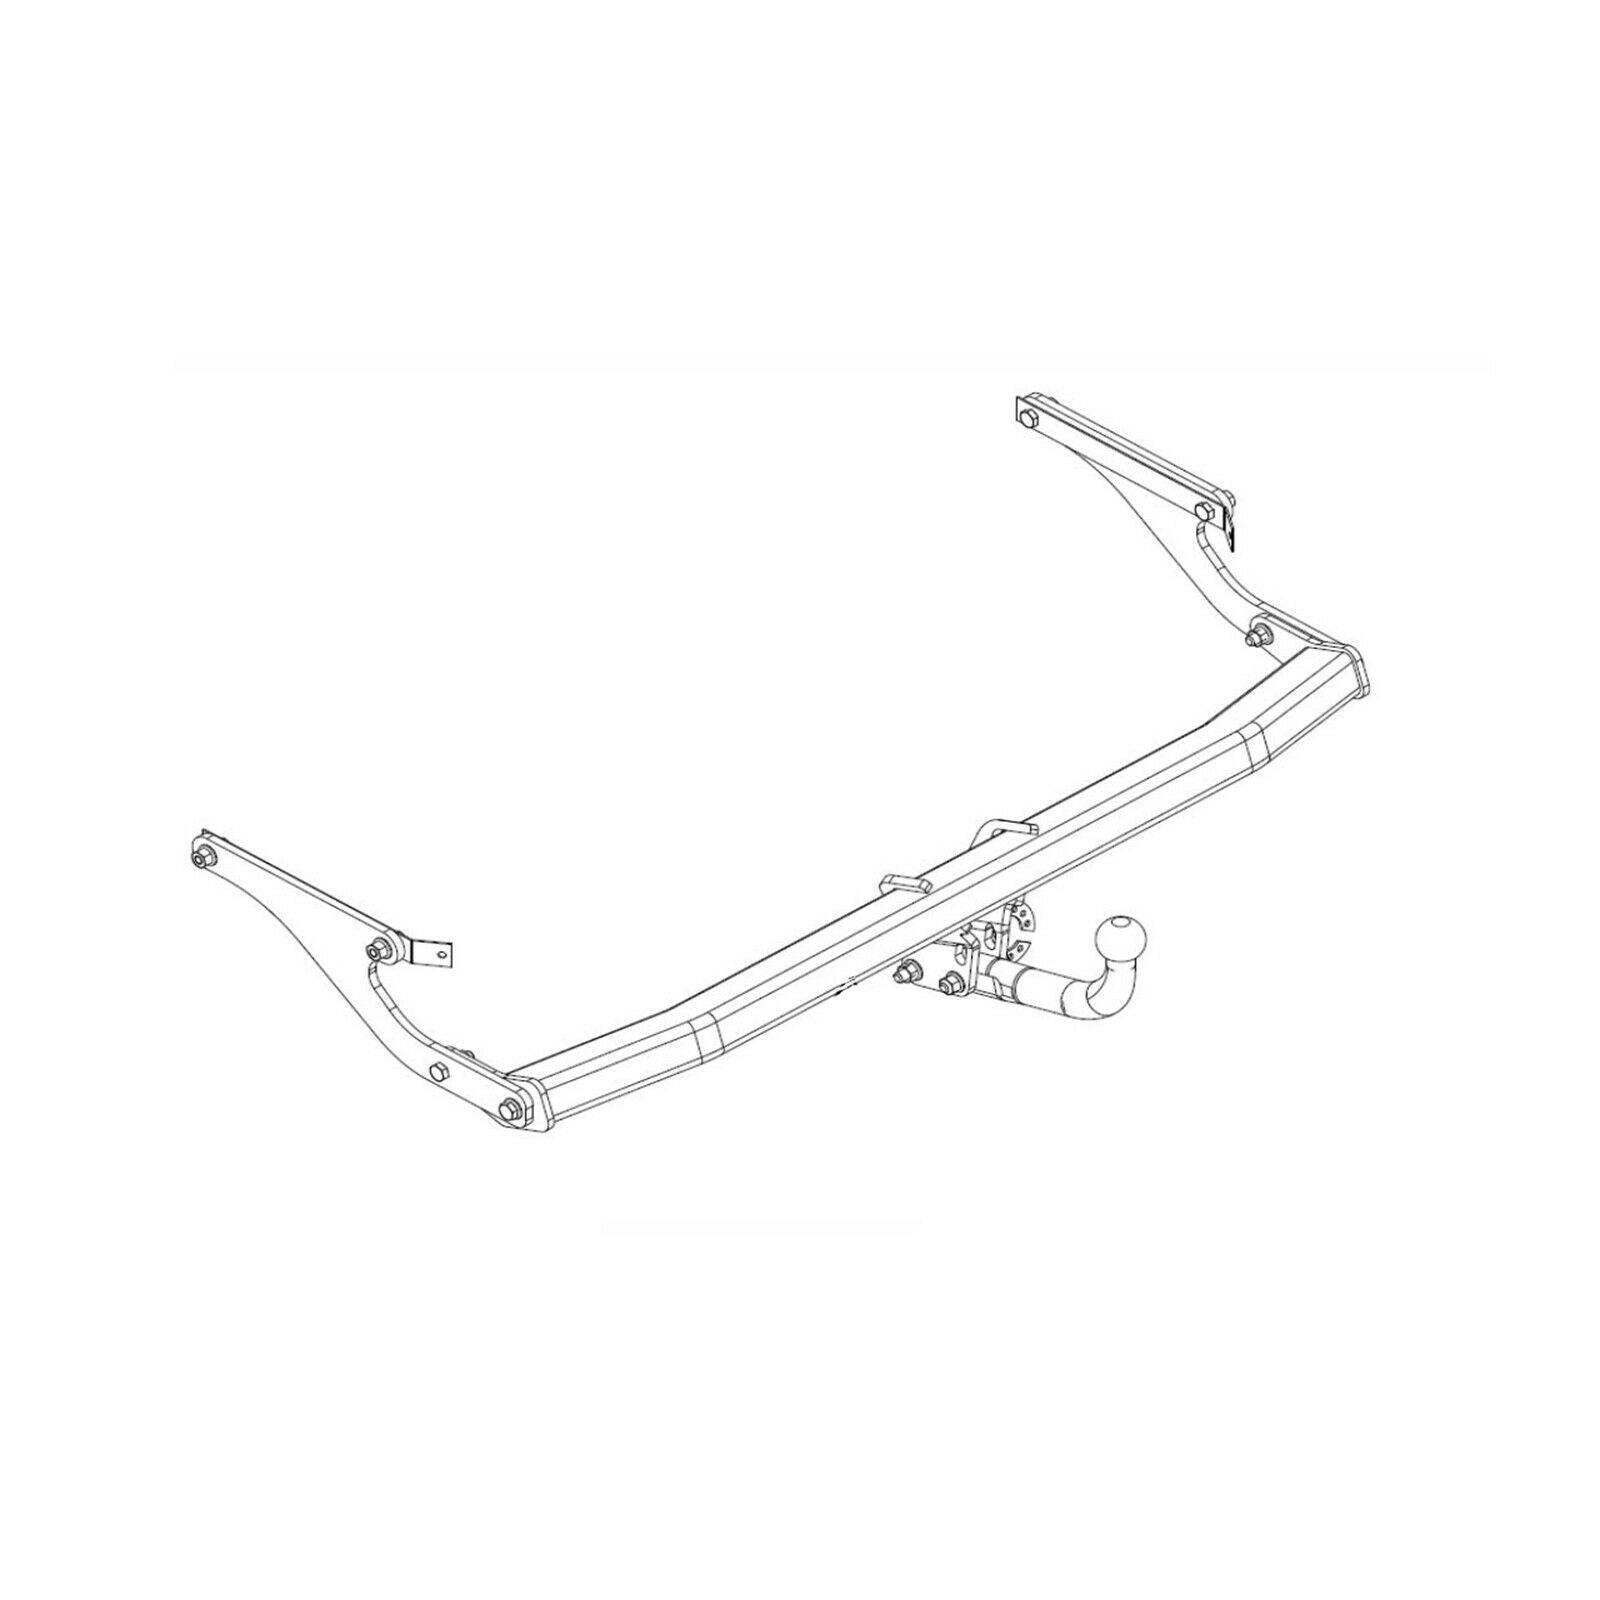 Westfalia Towbar For Renault Espace 2015 On Swan Neck Tow Bar Wiring Diagram 1 Of 2free Shipping